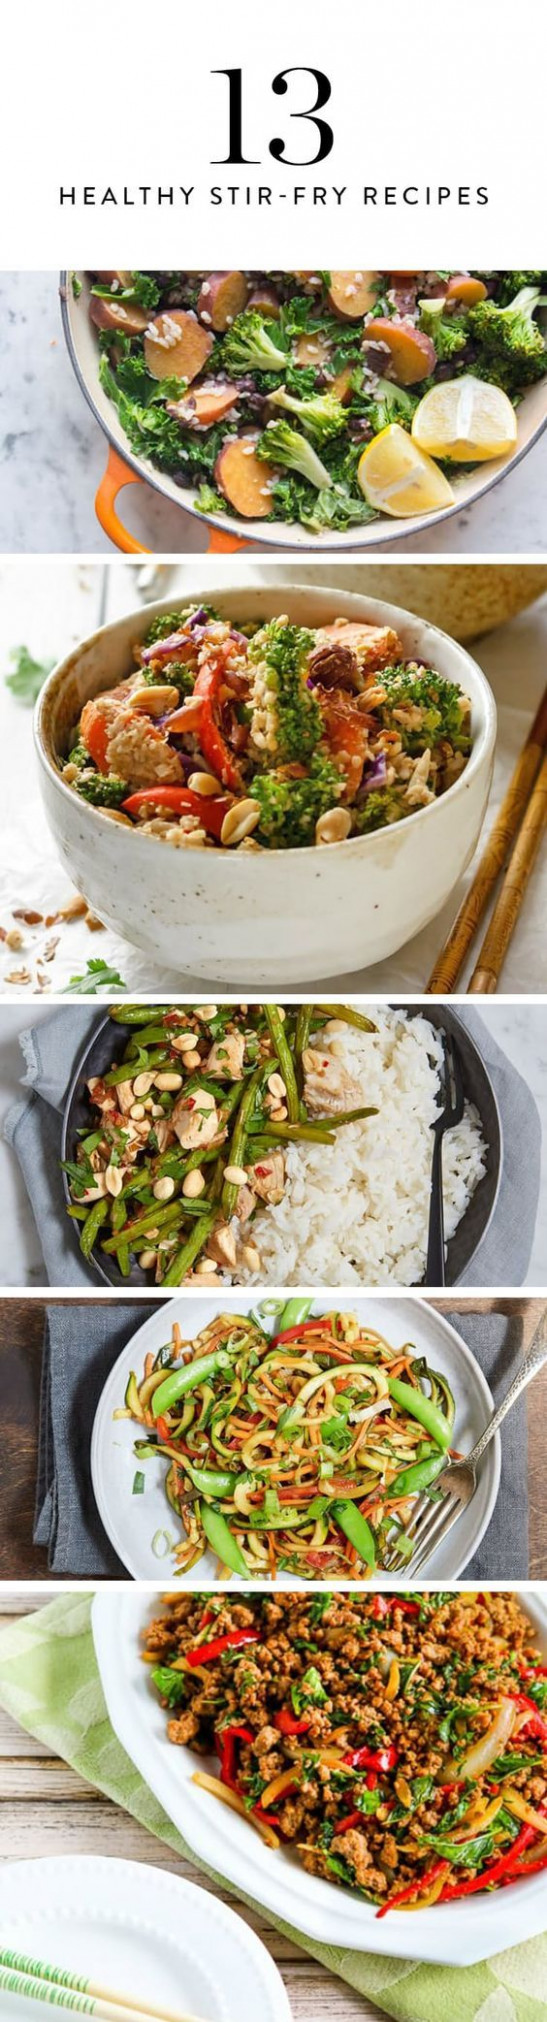 12 best images about Healthy Dinner Recipes on Pinterest - recipes on pinterest for dinner